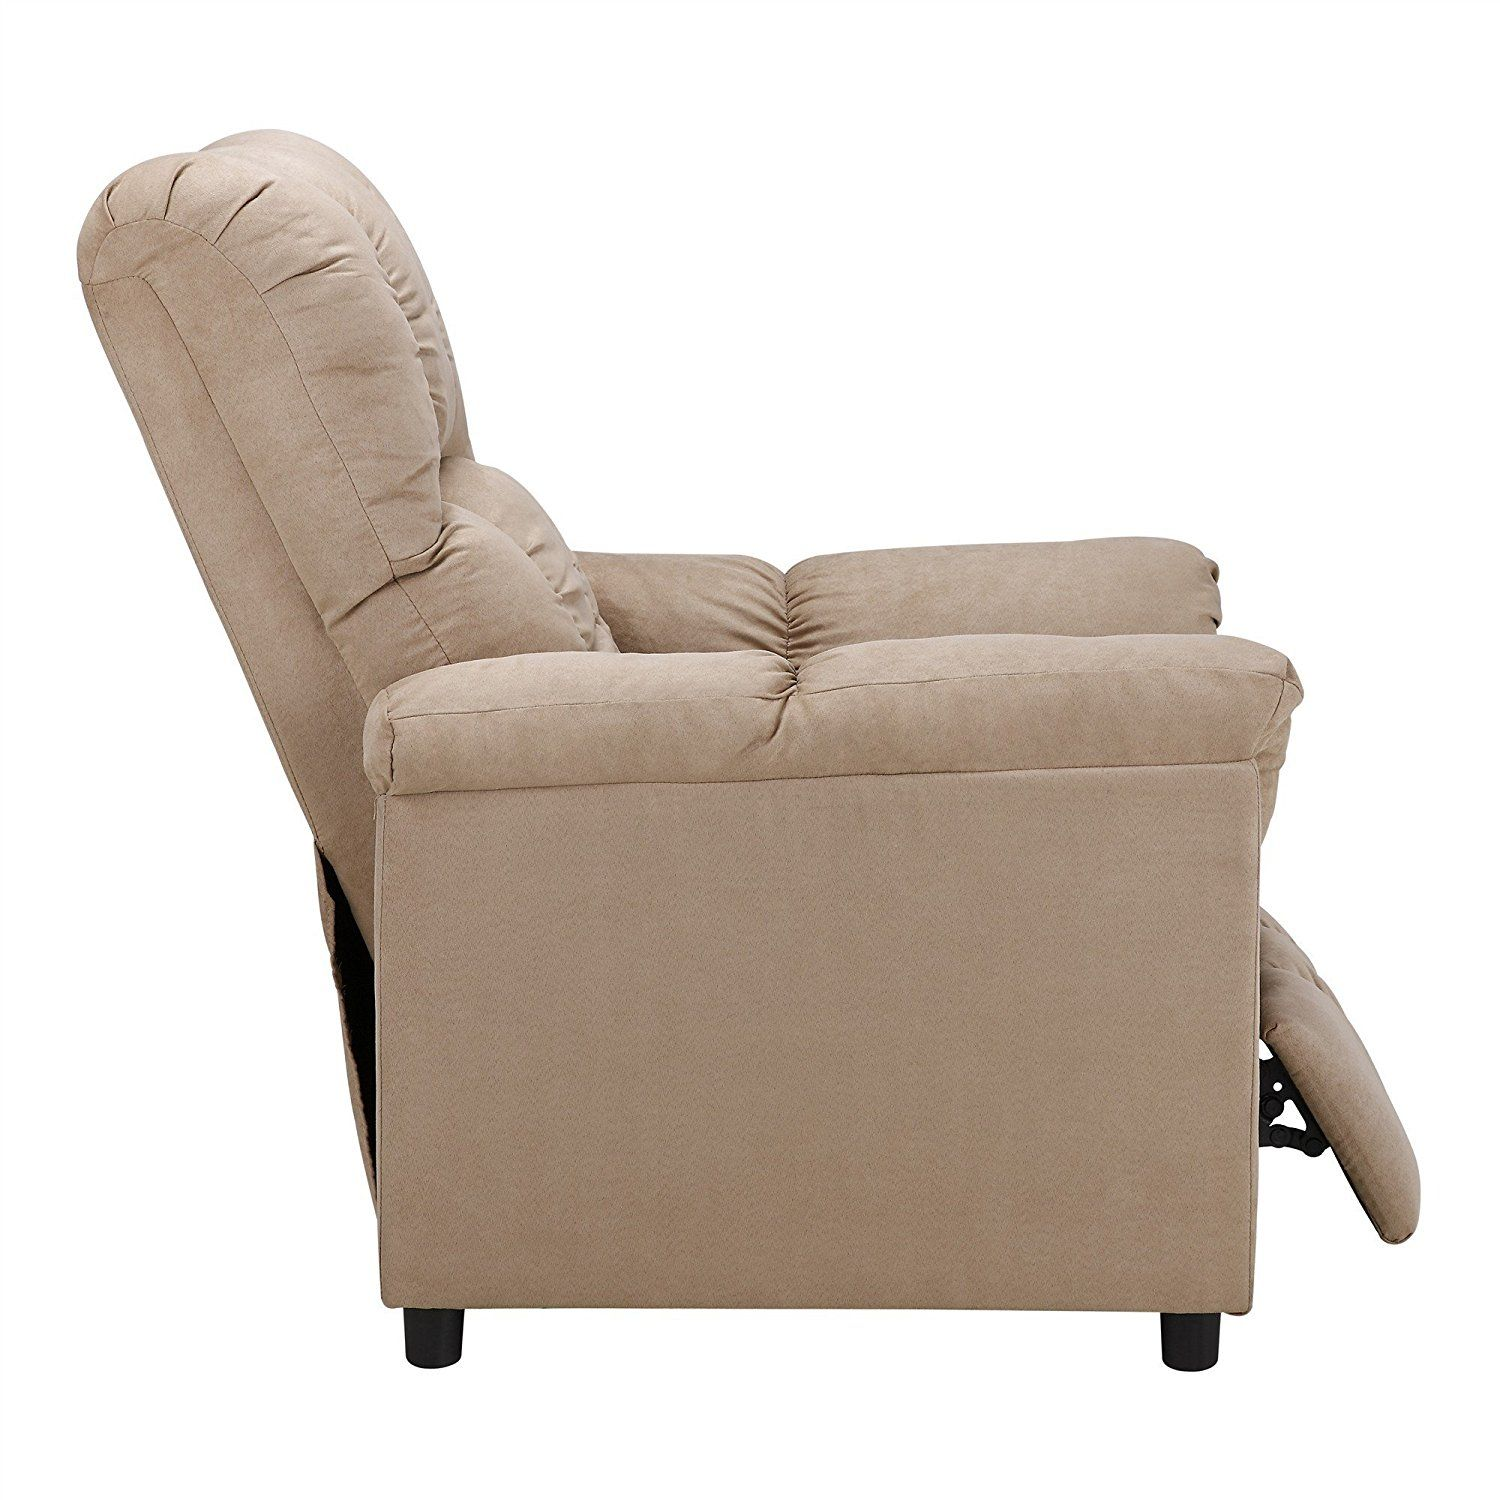 Recliners For Short People Http Reclinertime Com Recliners Short People Recliner Chair Recliner Chair Small recliners with good back support